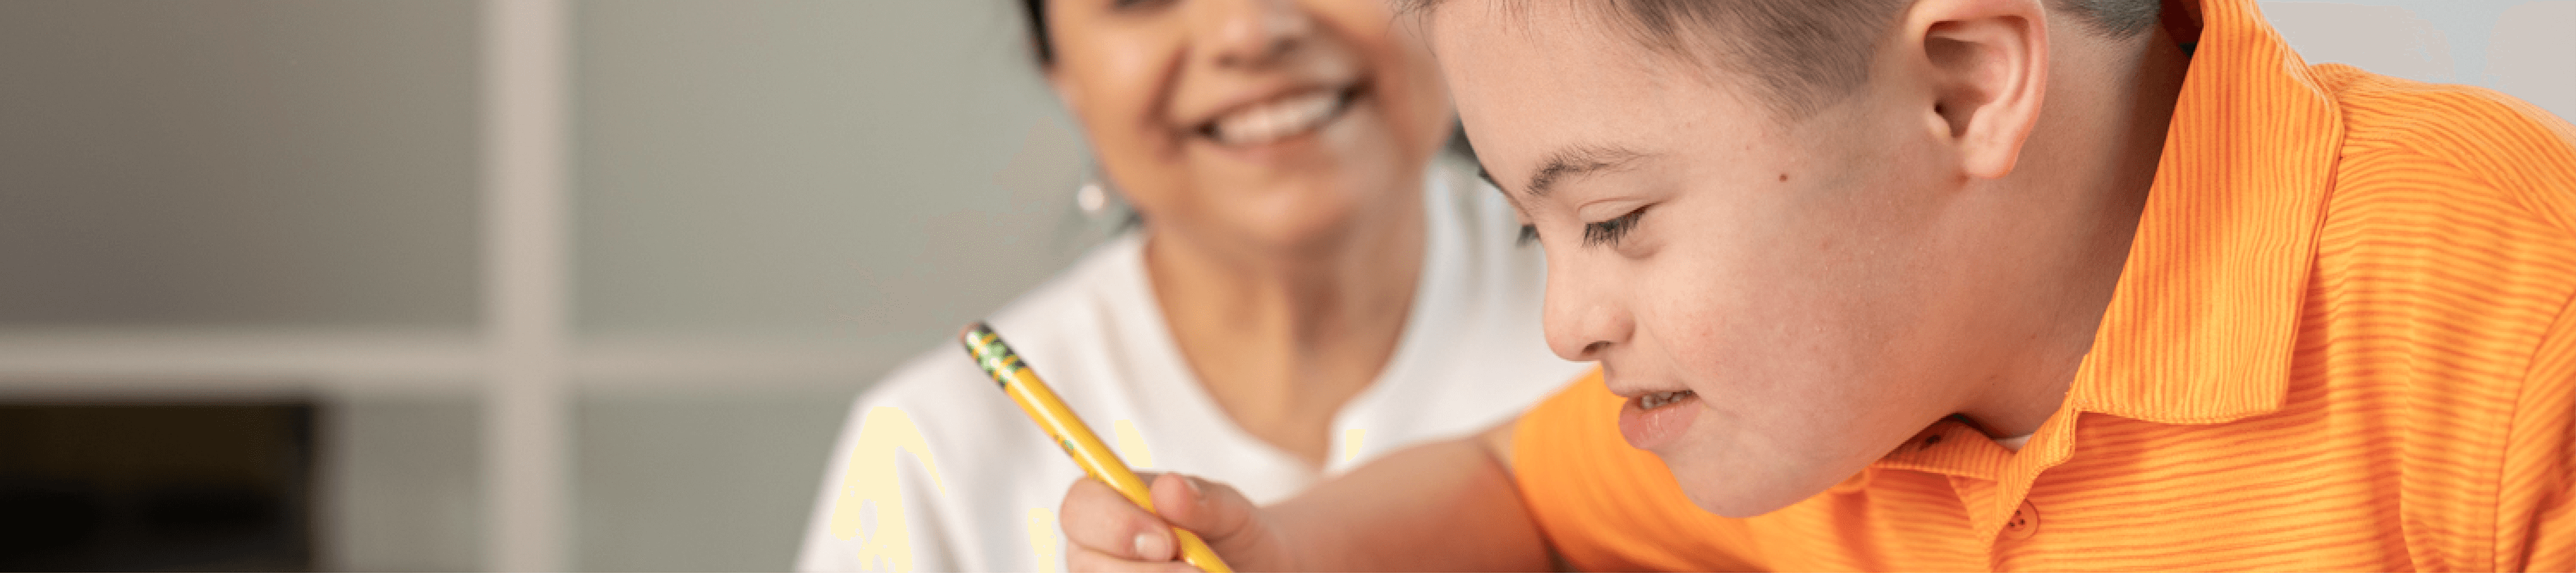 Grade schooler with Down syndrome does homework with mom